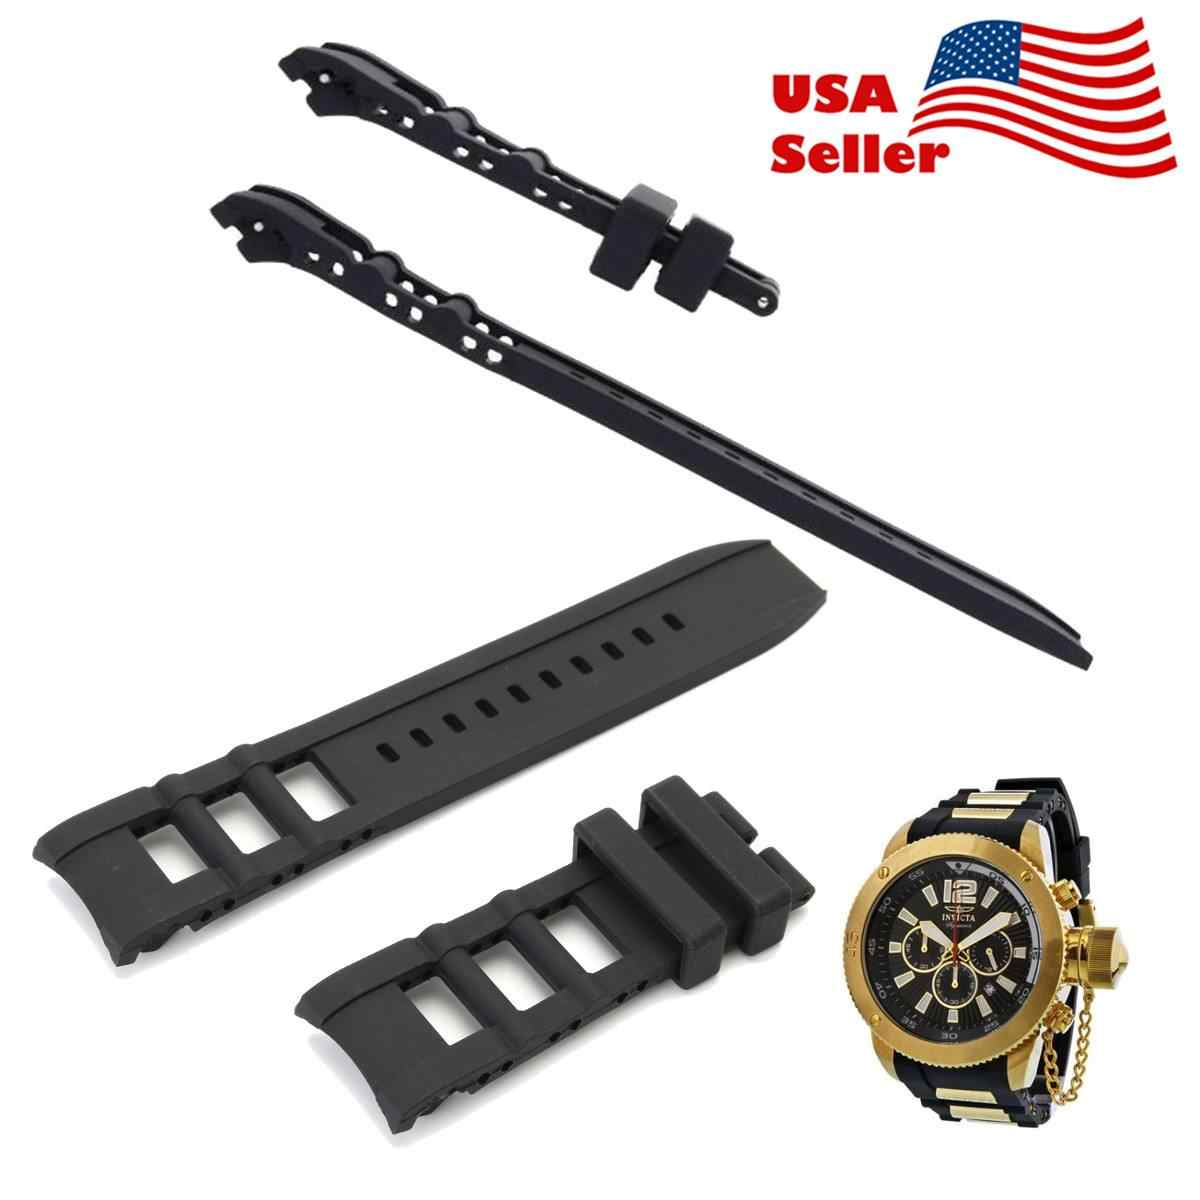 1Pc 26mm Black Rubber Watch Band Strap Fit Invicta Signature II Russian Diver Chronograph Collection